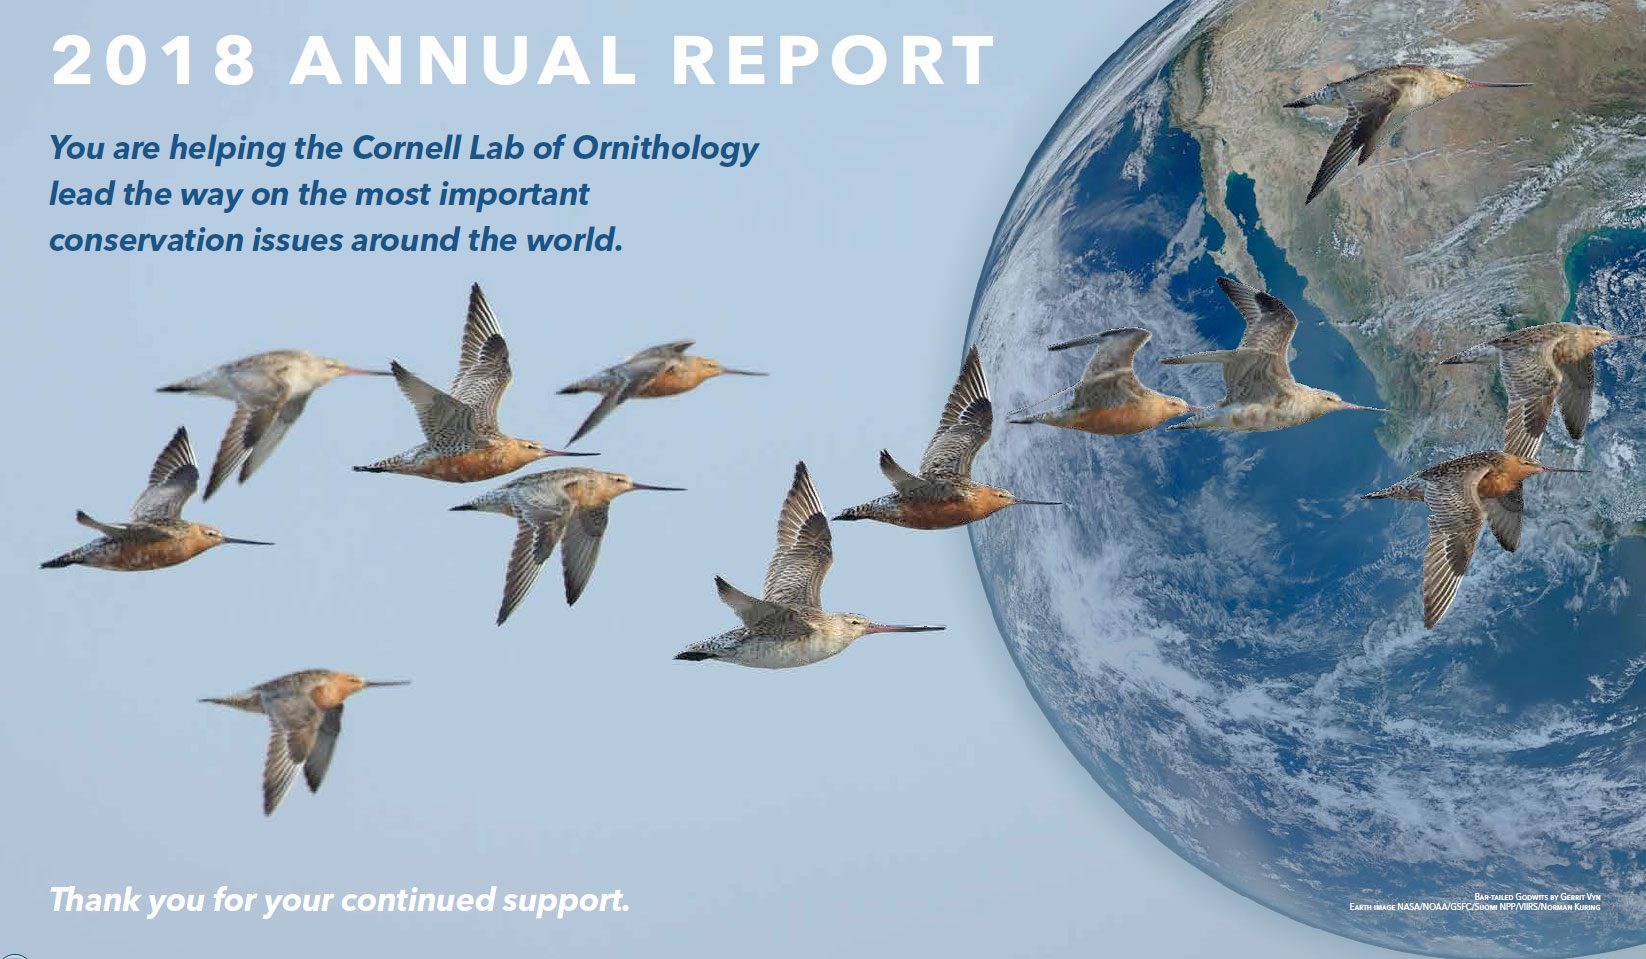 Read our 2018 Annual Report. Bar-tailed Godwits by Gerrit Vyn. Earth image NASA/NOAA/GSFC/Suomi NPP/VIIRS/Norman Kuring